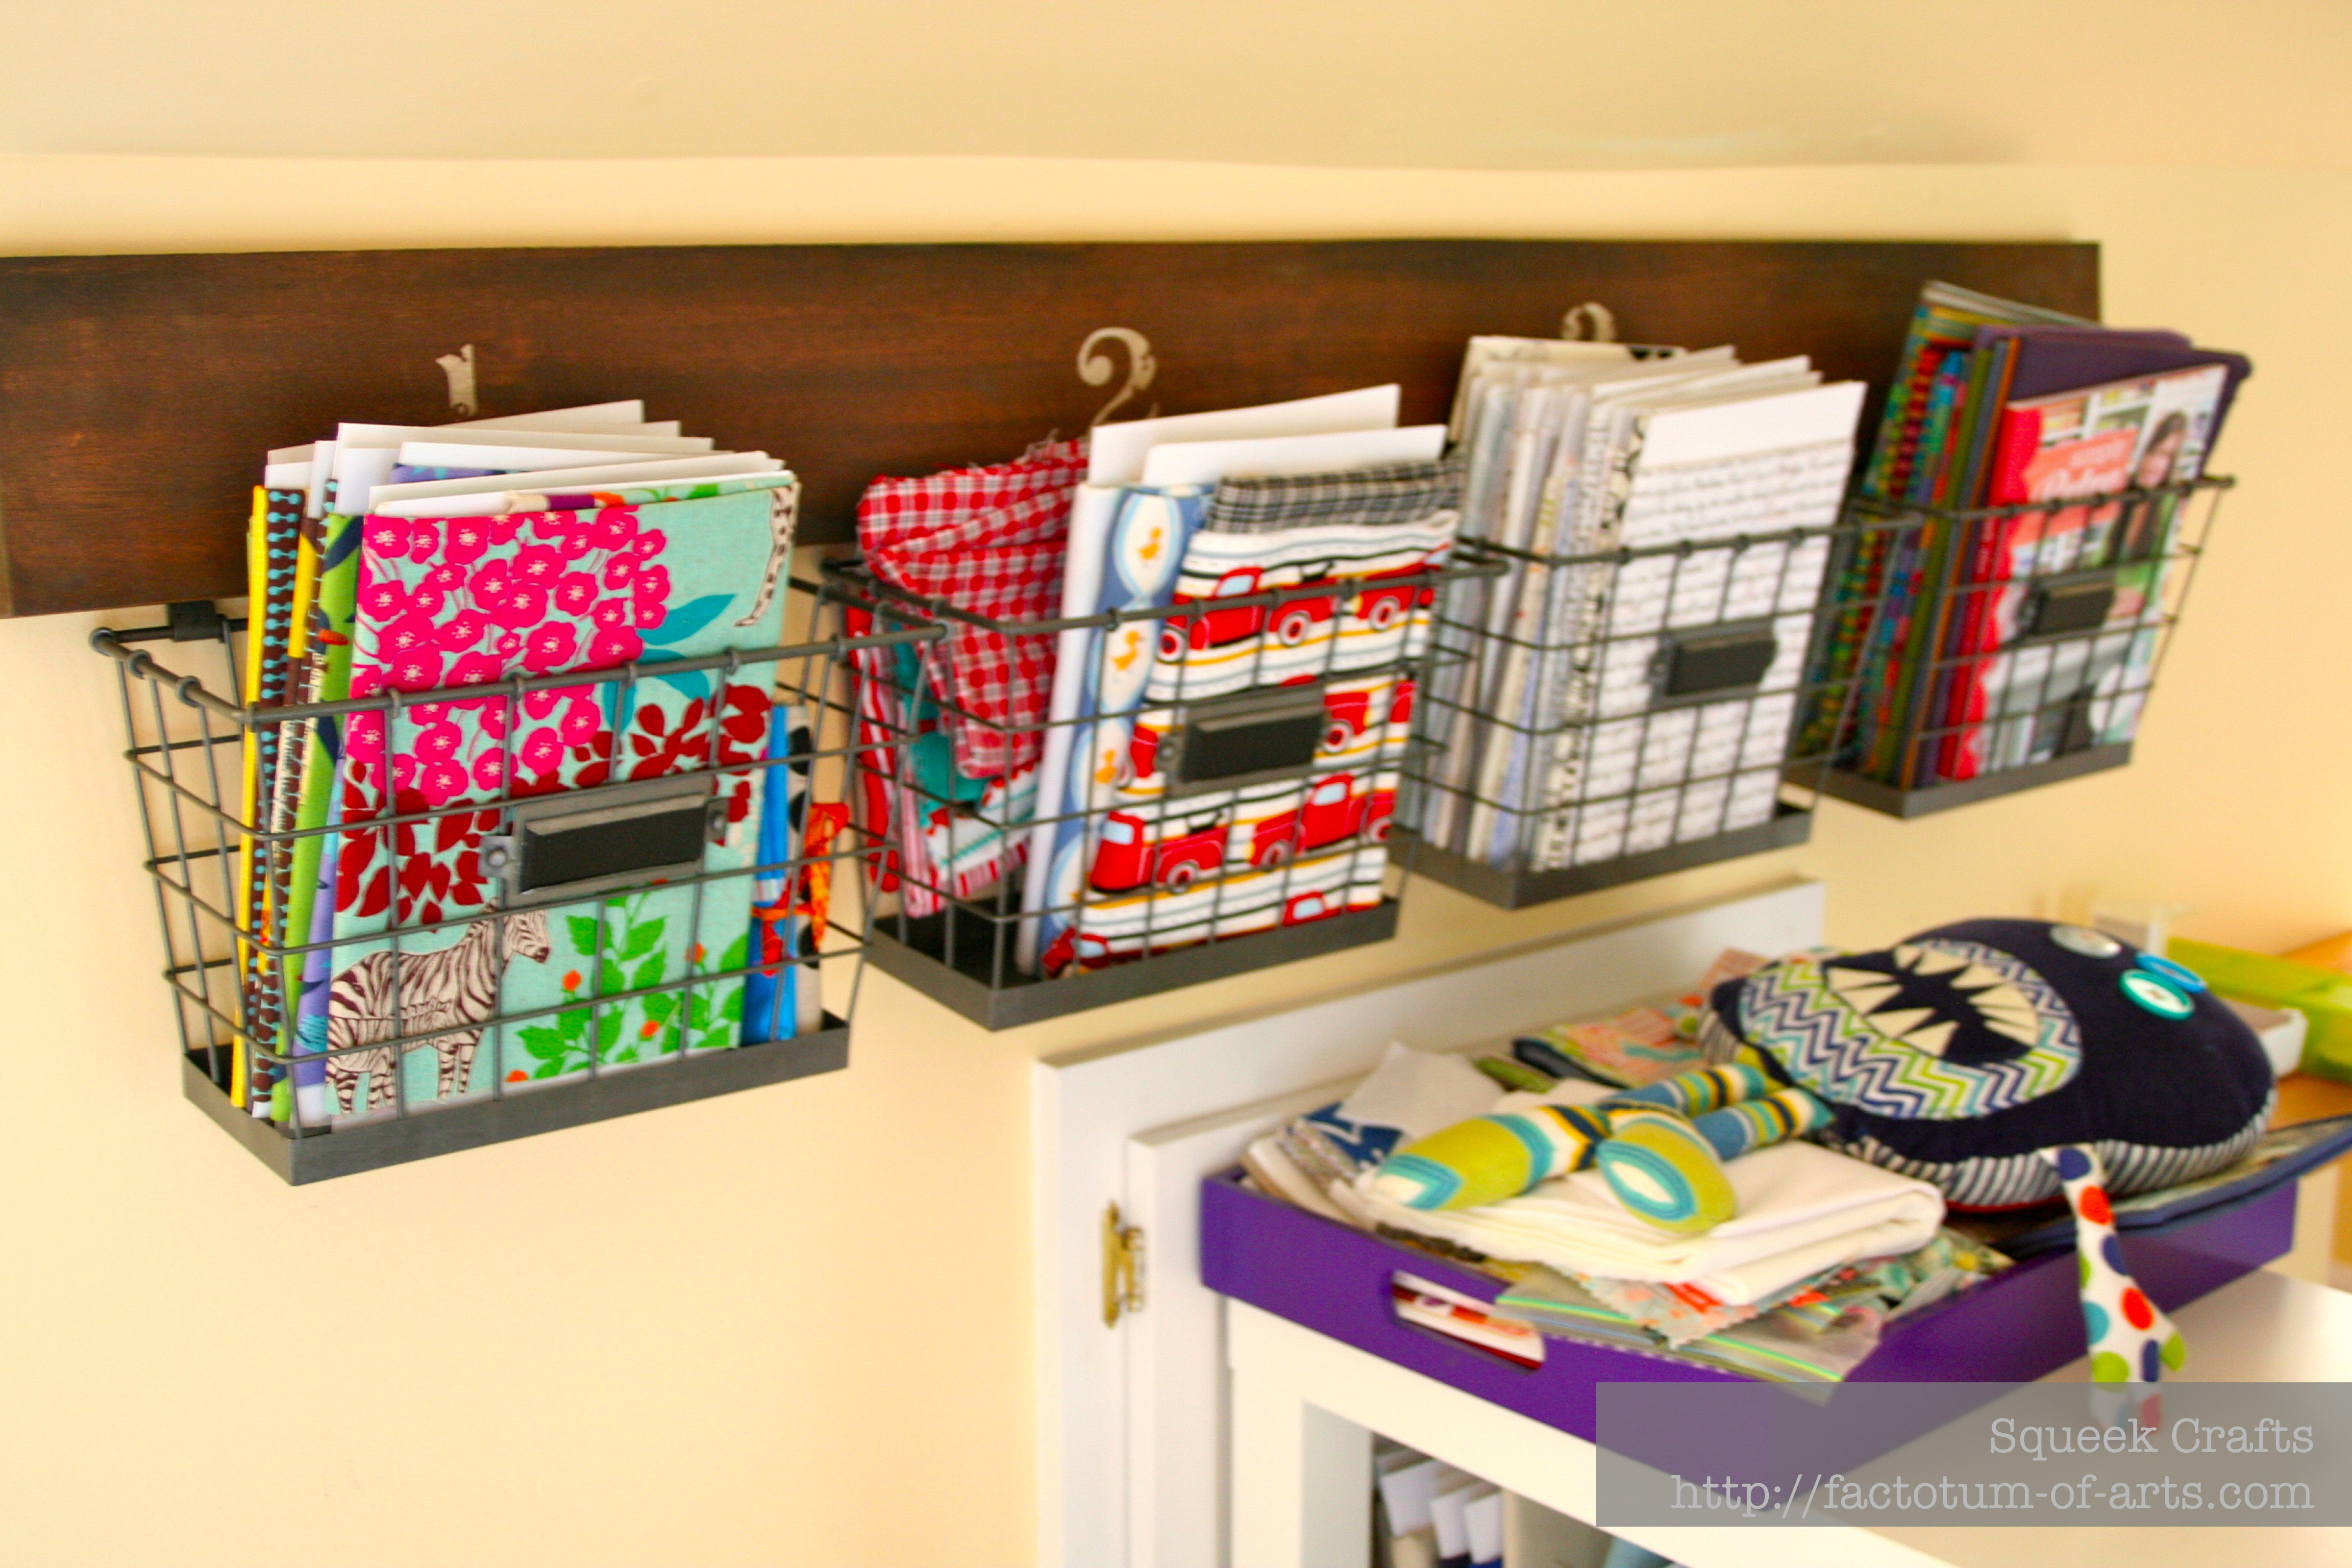 Best ideas about Sewing Storage Ideas . Save or Pin Organizing my sewing room Now.